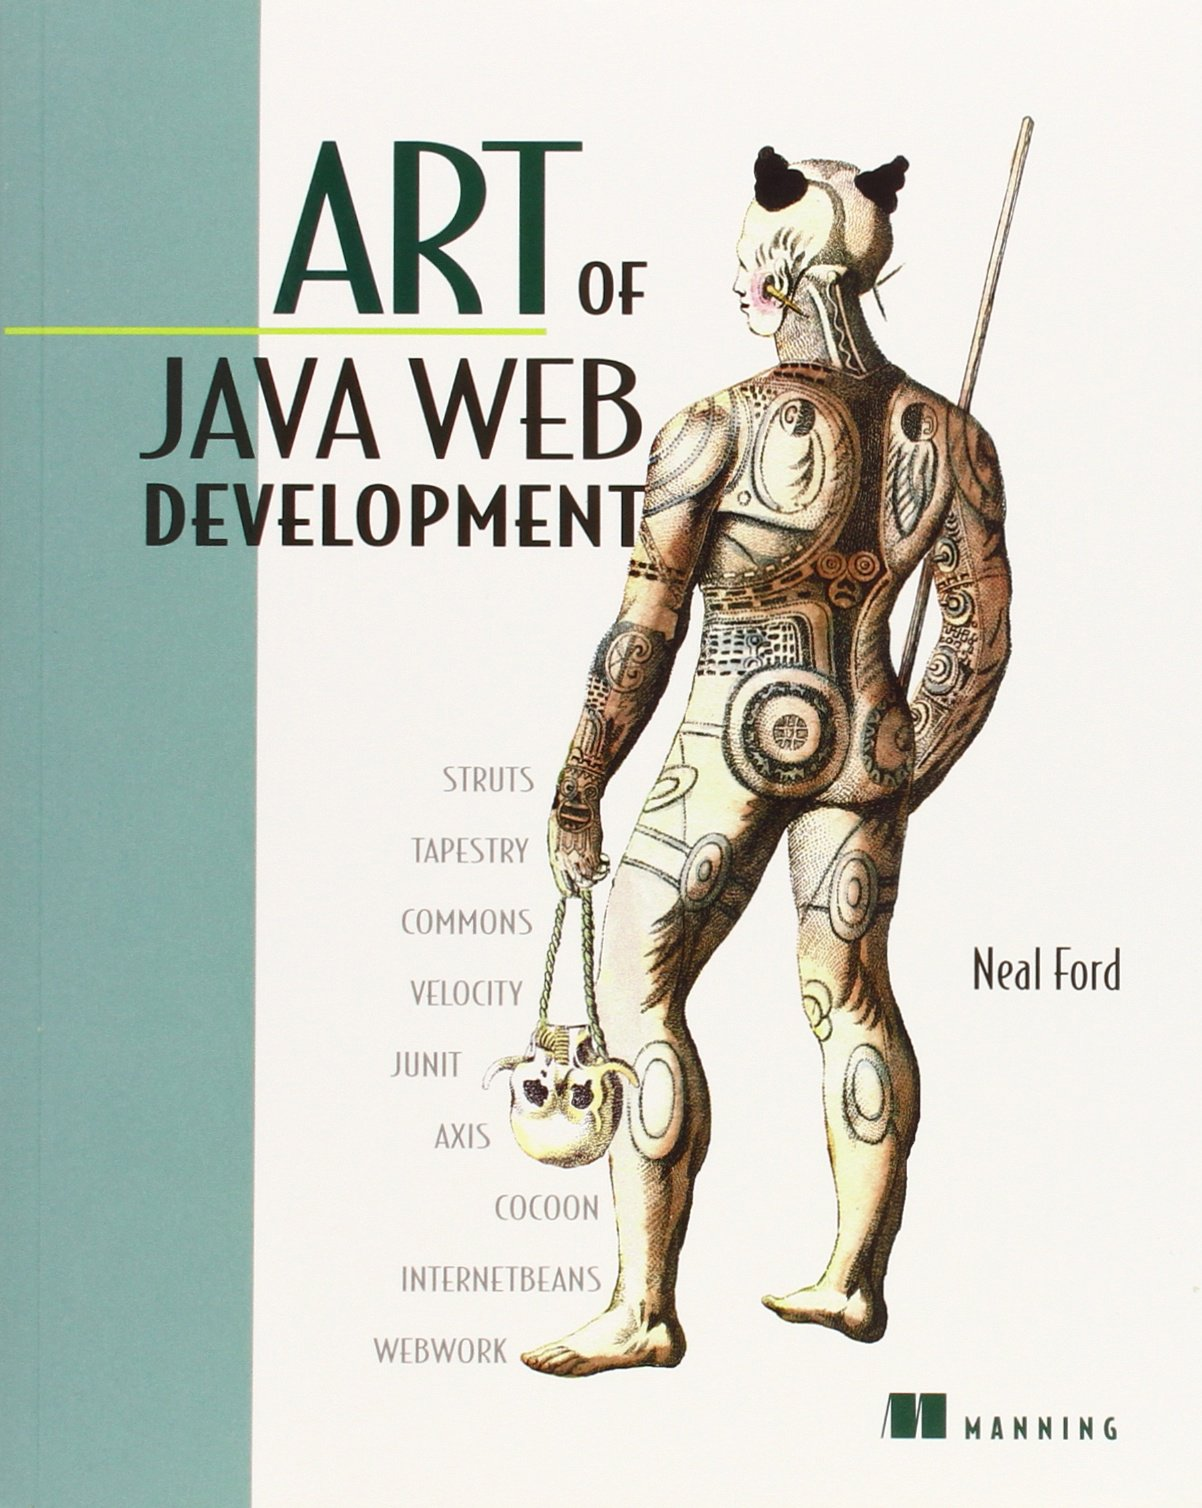 Read Online Art of Java Web Development: Struts, Tapestry, Commons, Velocity, JUnit, Axis, Cocoon, InternetBeans, WebWork ebook